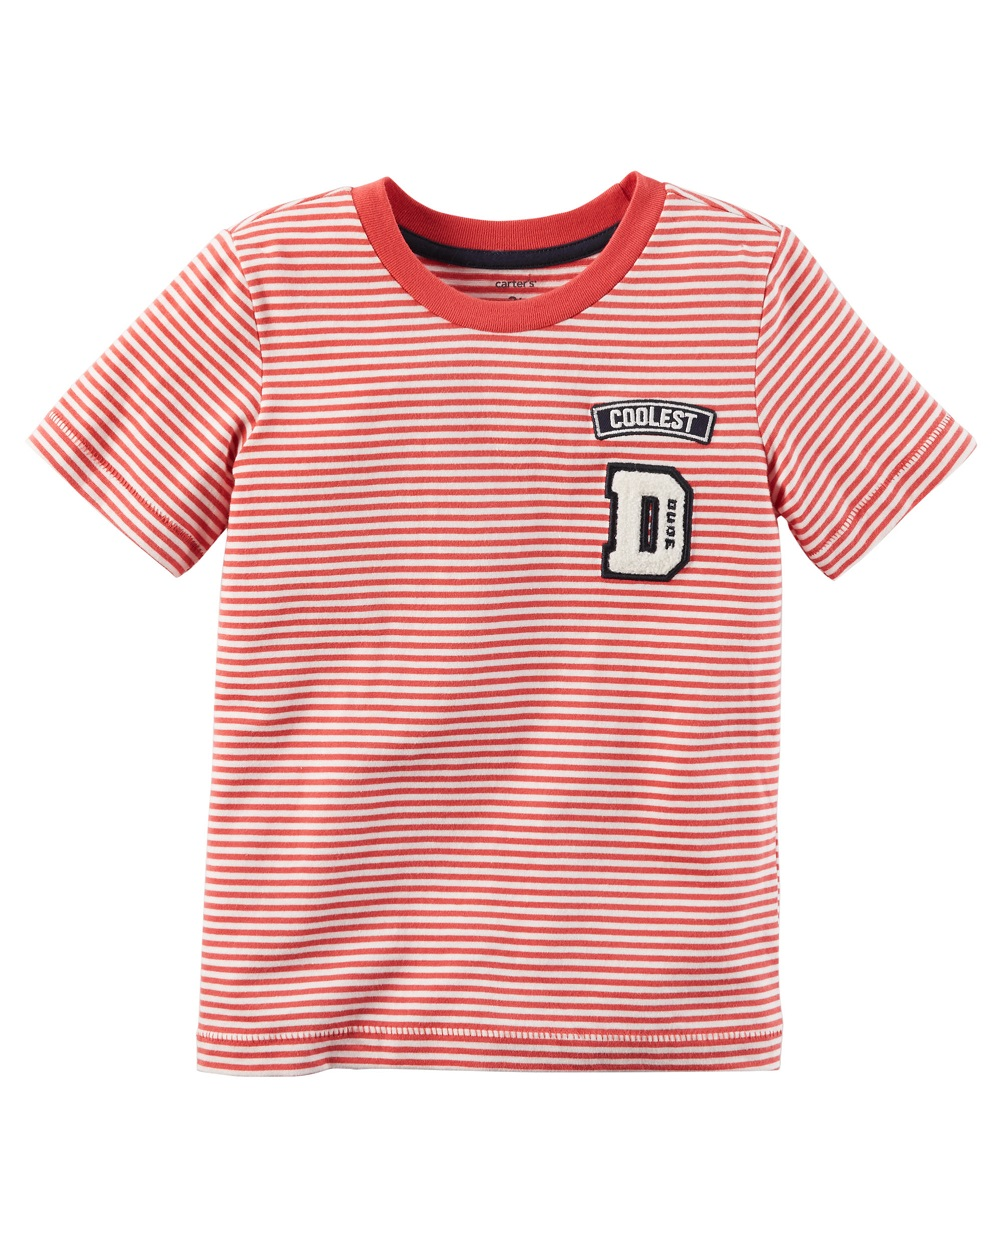 Carter's Baby Boys' Striped Ringer Tee, 3 Months